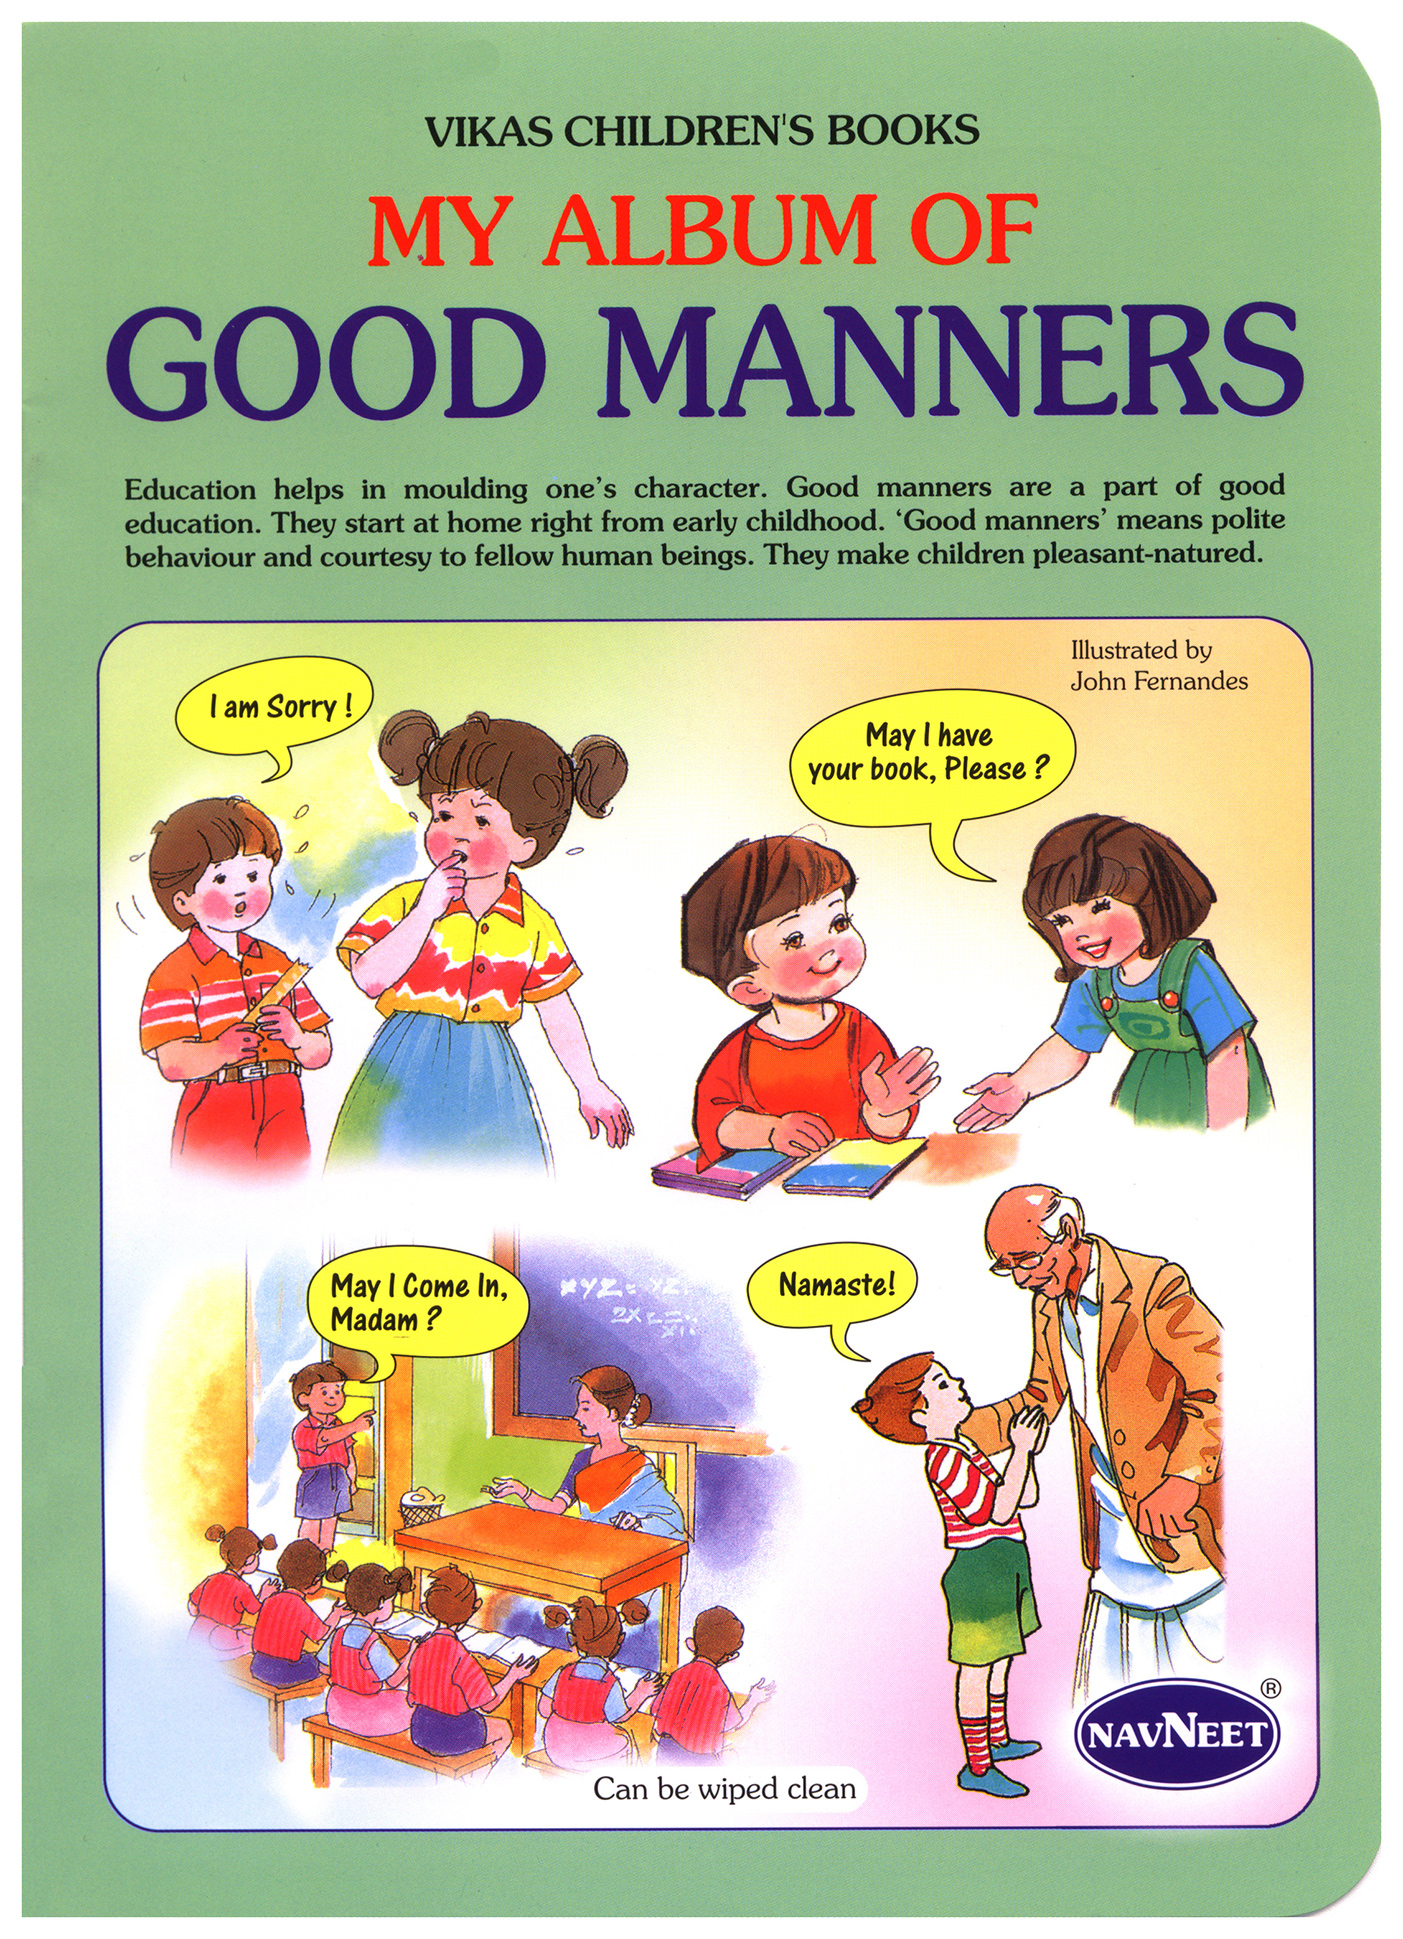 good manners essay for kids We want to be recognized as people who have good manners because it doesn't only make other people happy, it also makes people respect us.